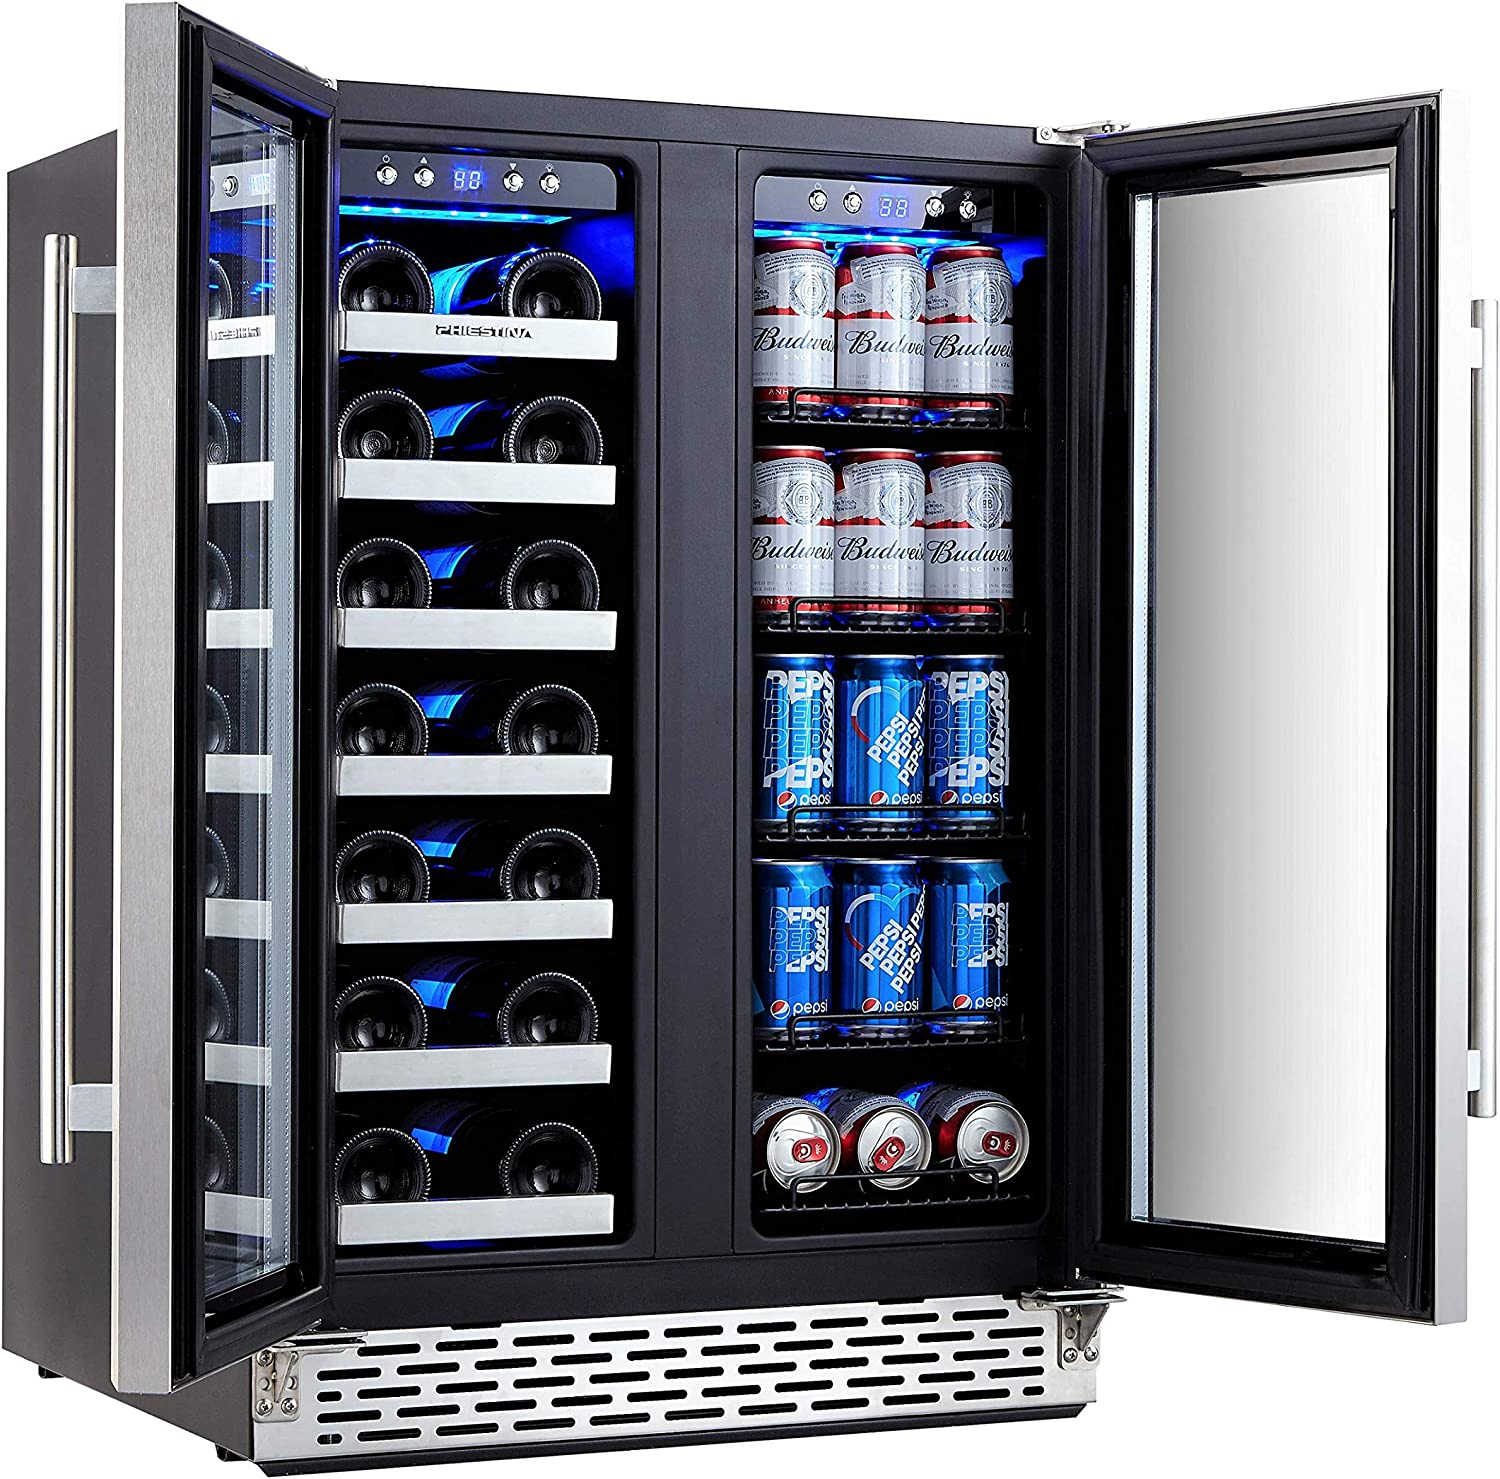 Phiestina Wine and Beverage Refrigerator | 24 Inch Built-In Dual Zone Wine Beer Cooler Refrigerator | Free Standing French Door Drink Fridge with Digital...